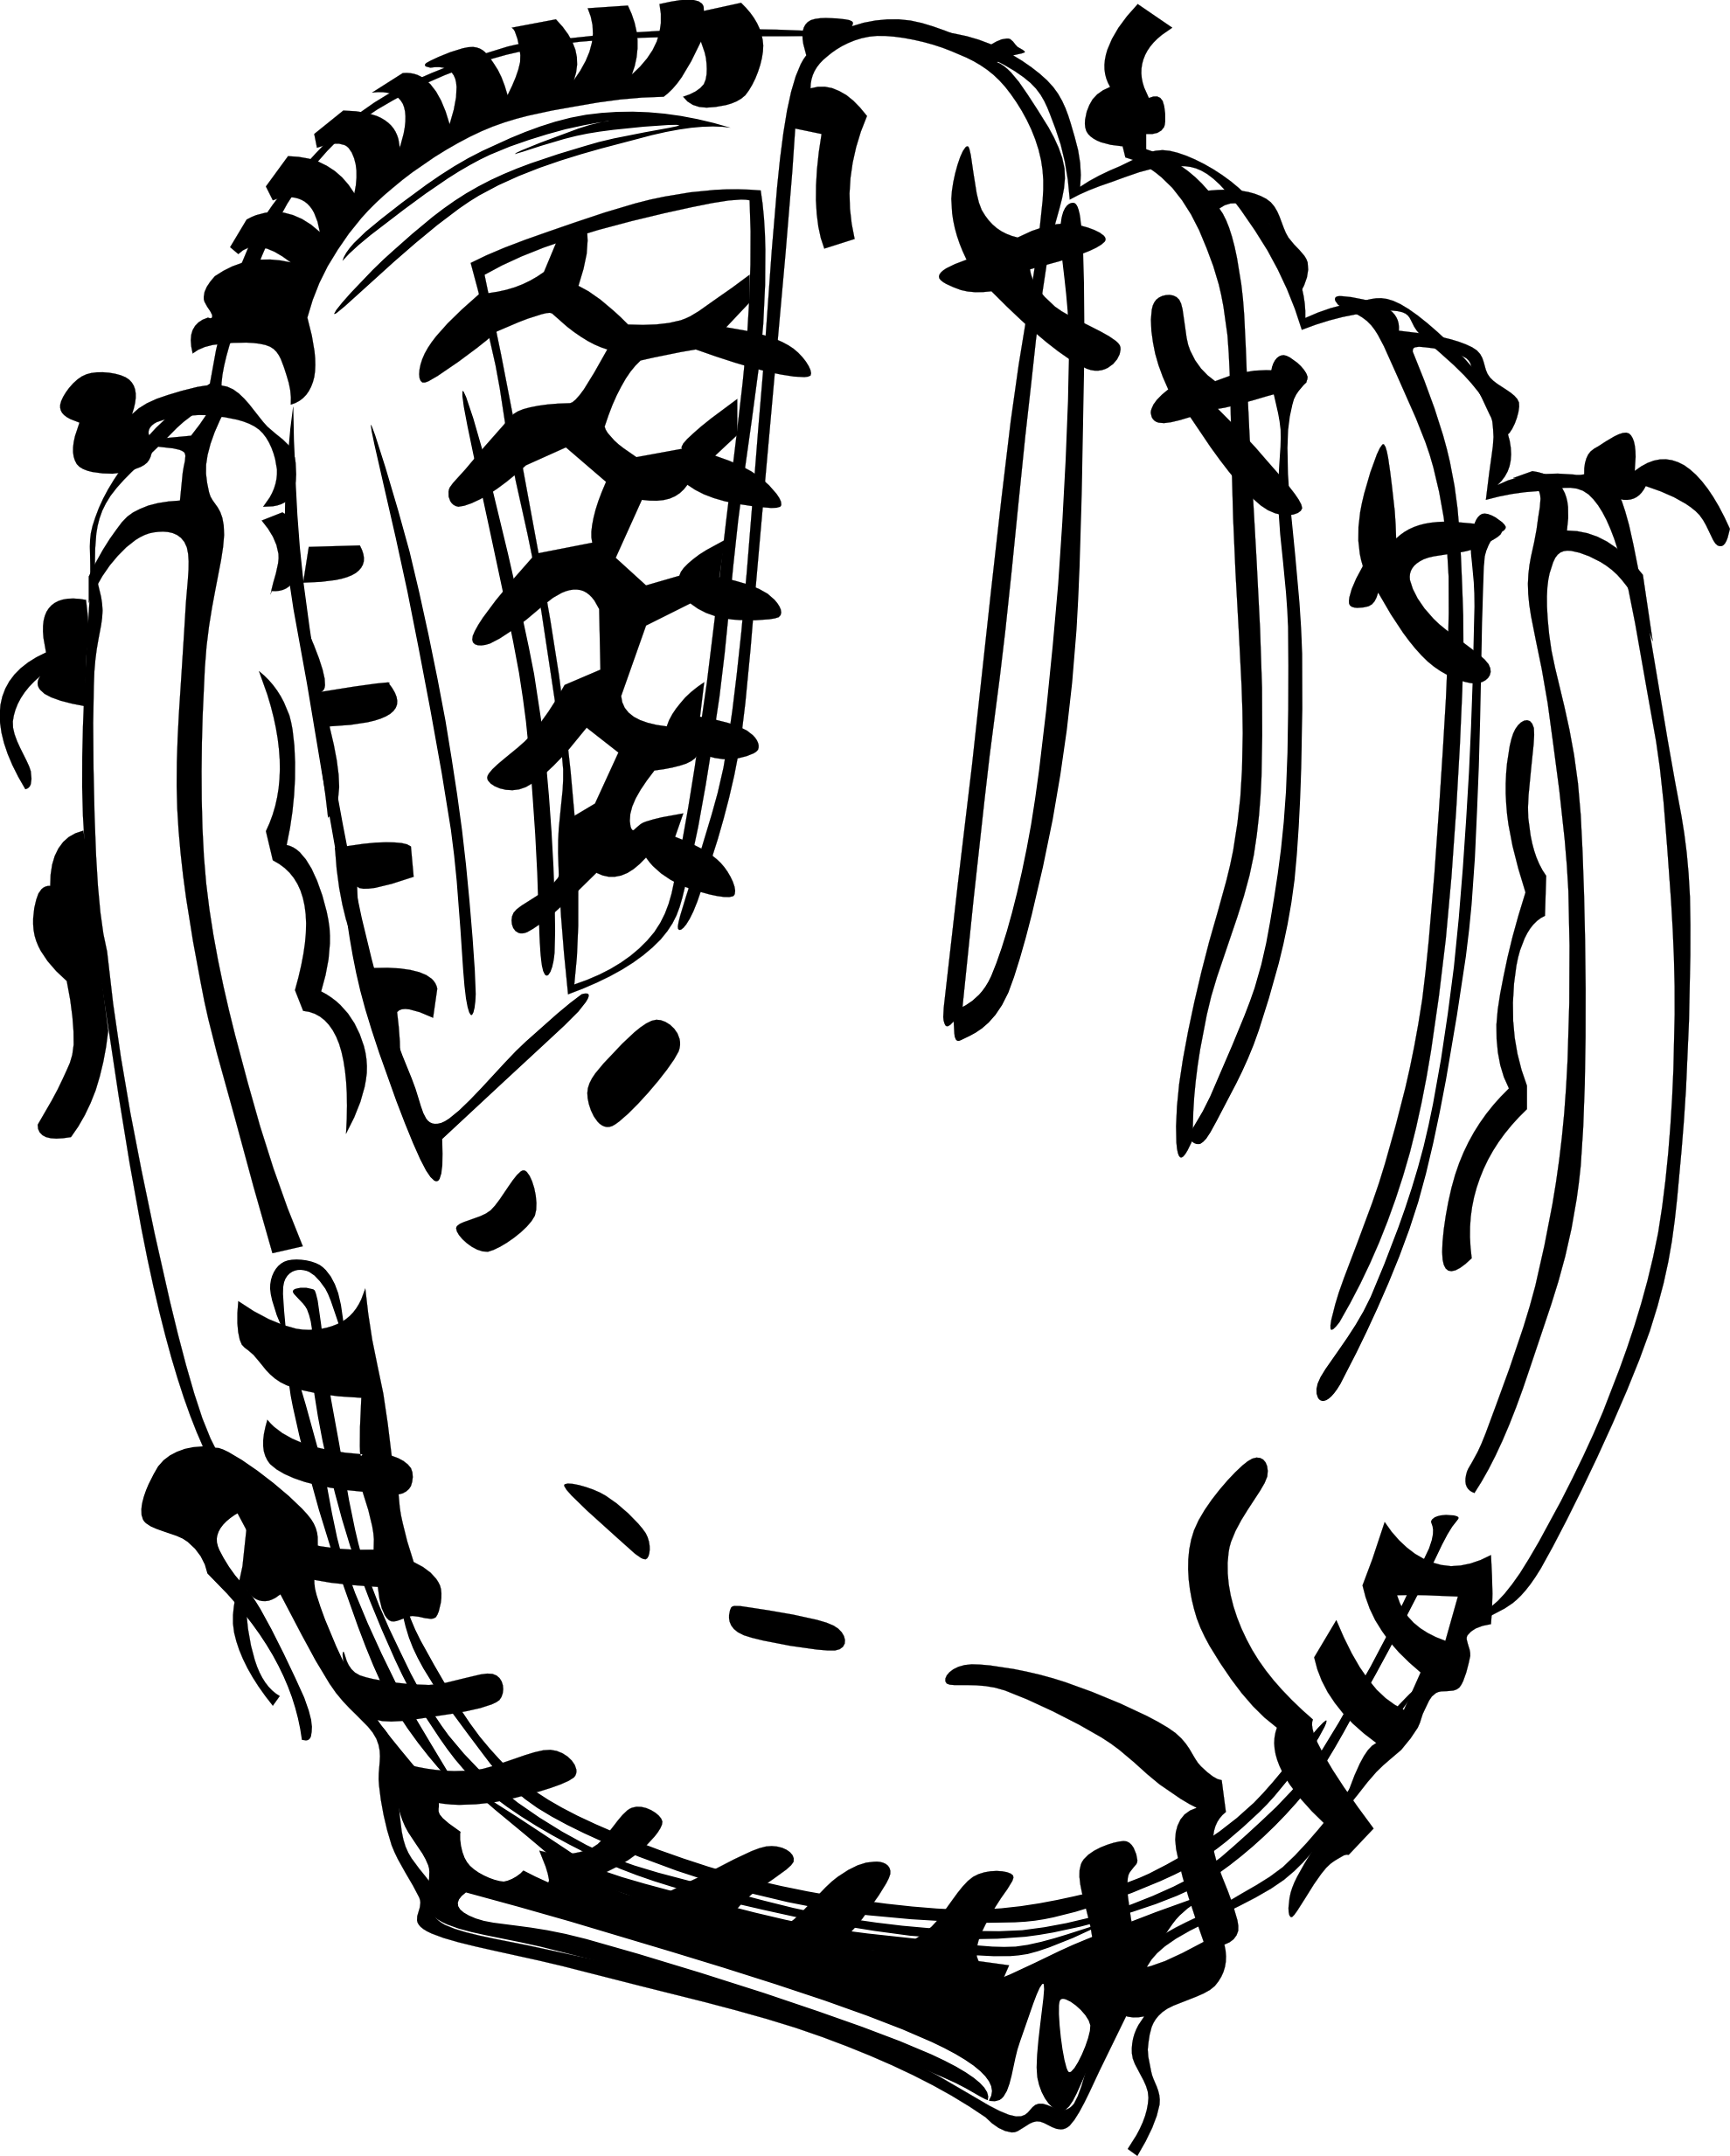 Line Art Vector Design Png : Baseball vector art clipart best